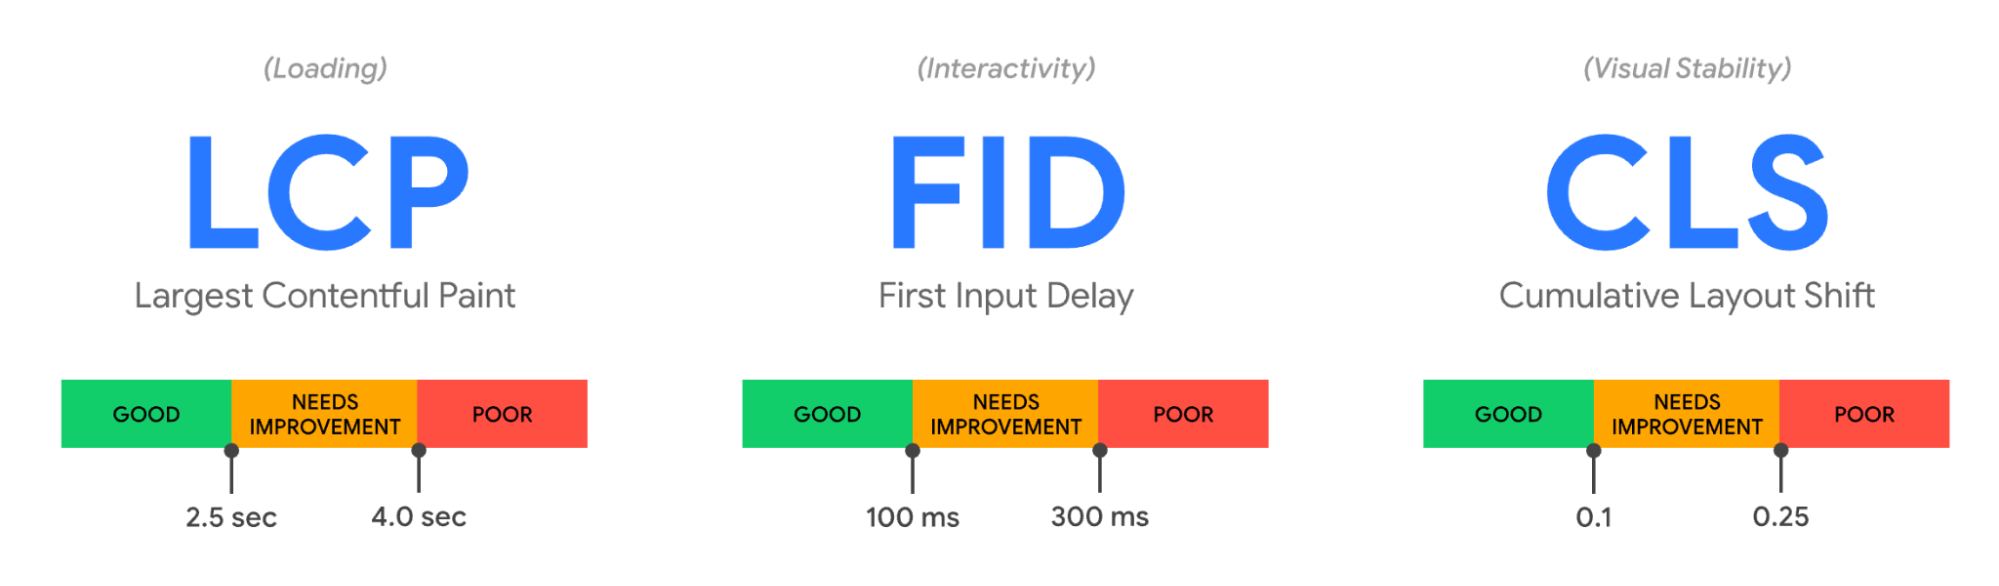 Google's core web vitals—LCP, FID, and CLS